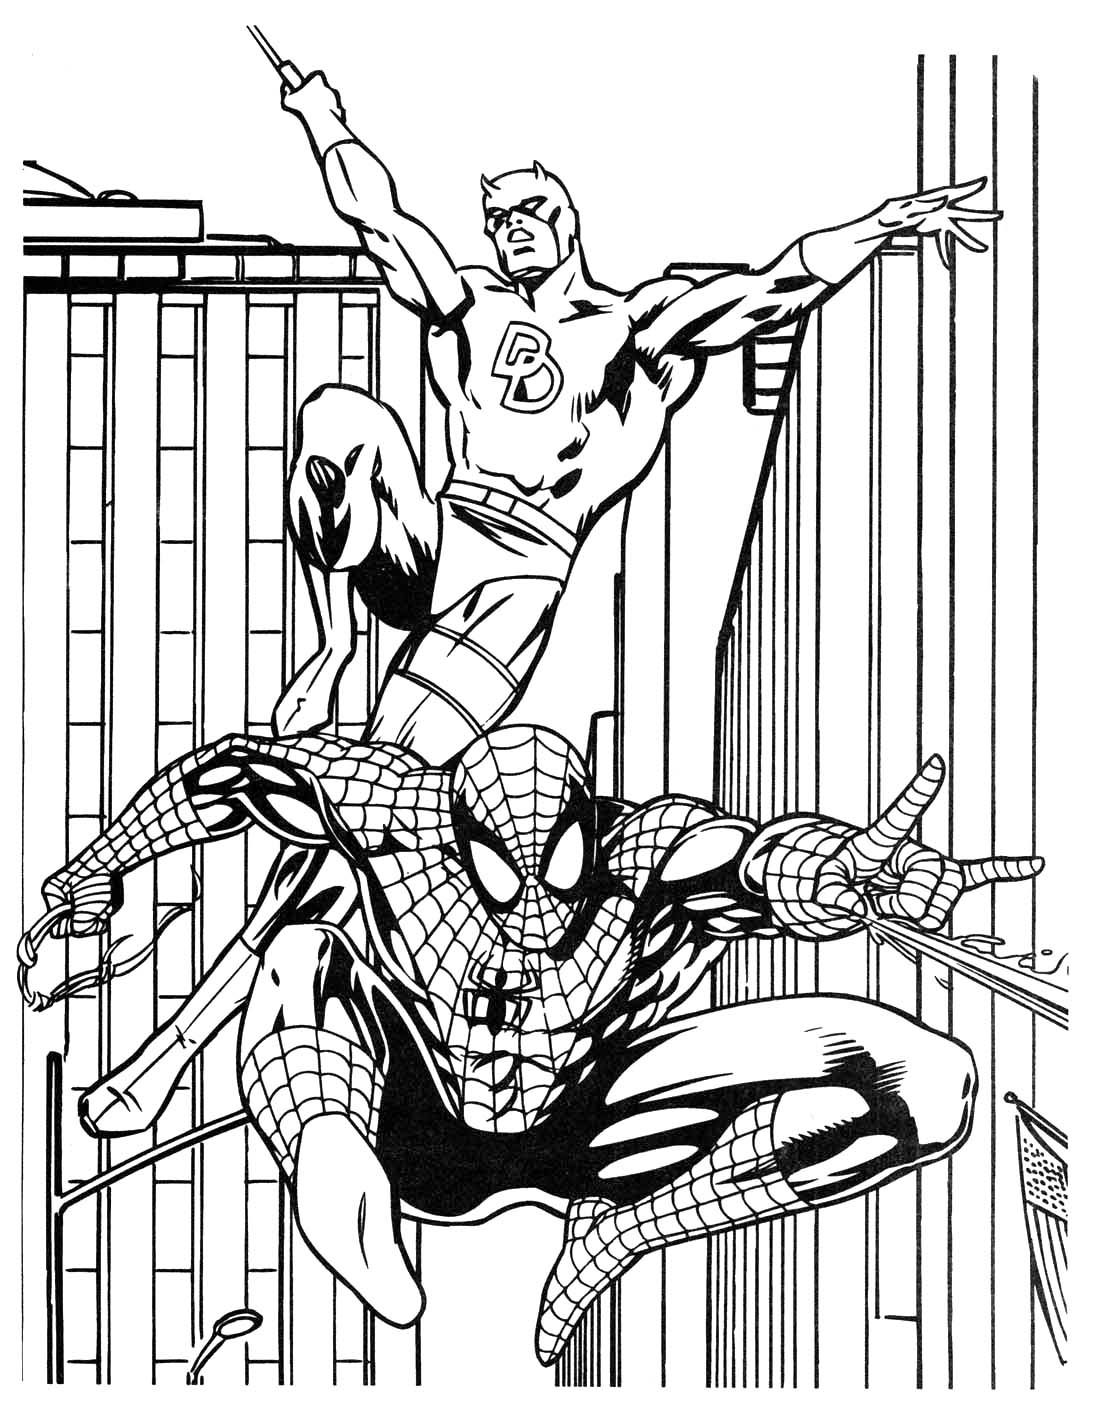 Coloring book - Marvel Super heroes | DIBUJOS DE MARVEL | Pinterest